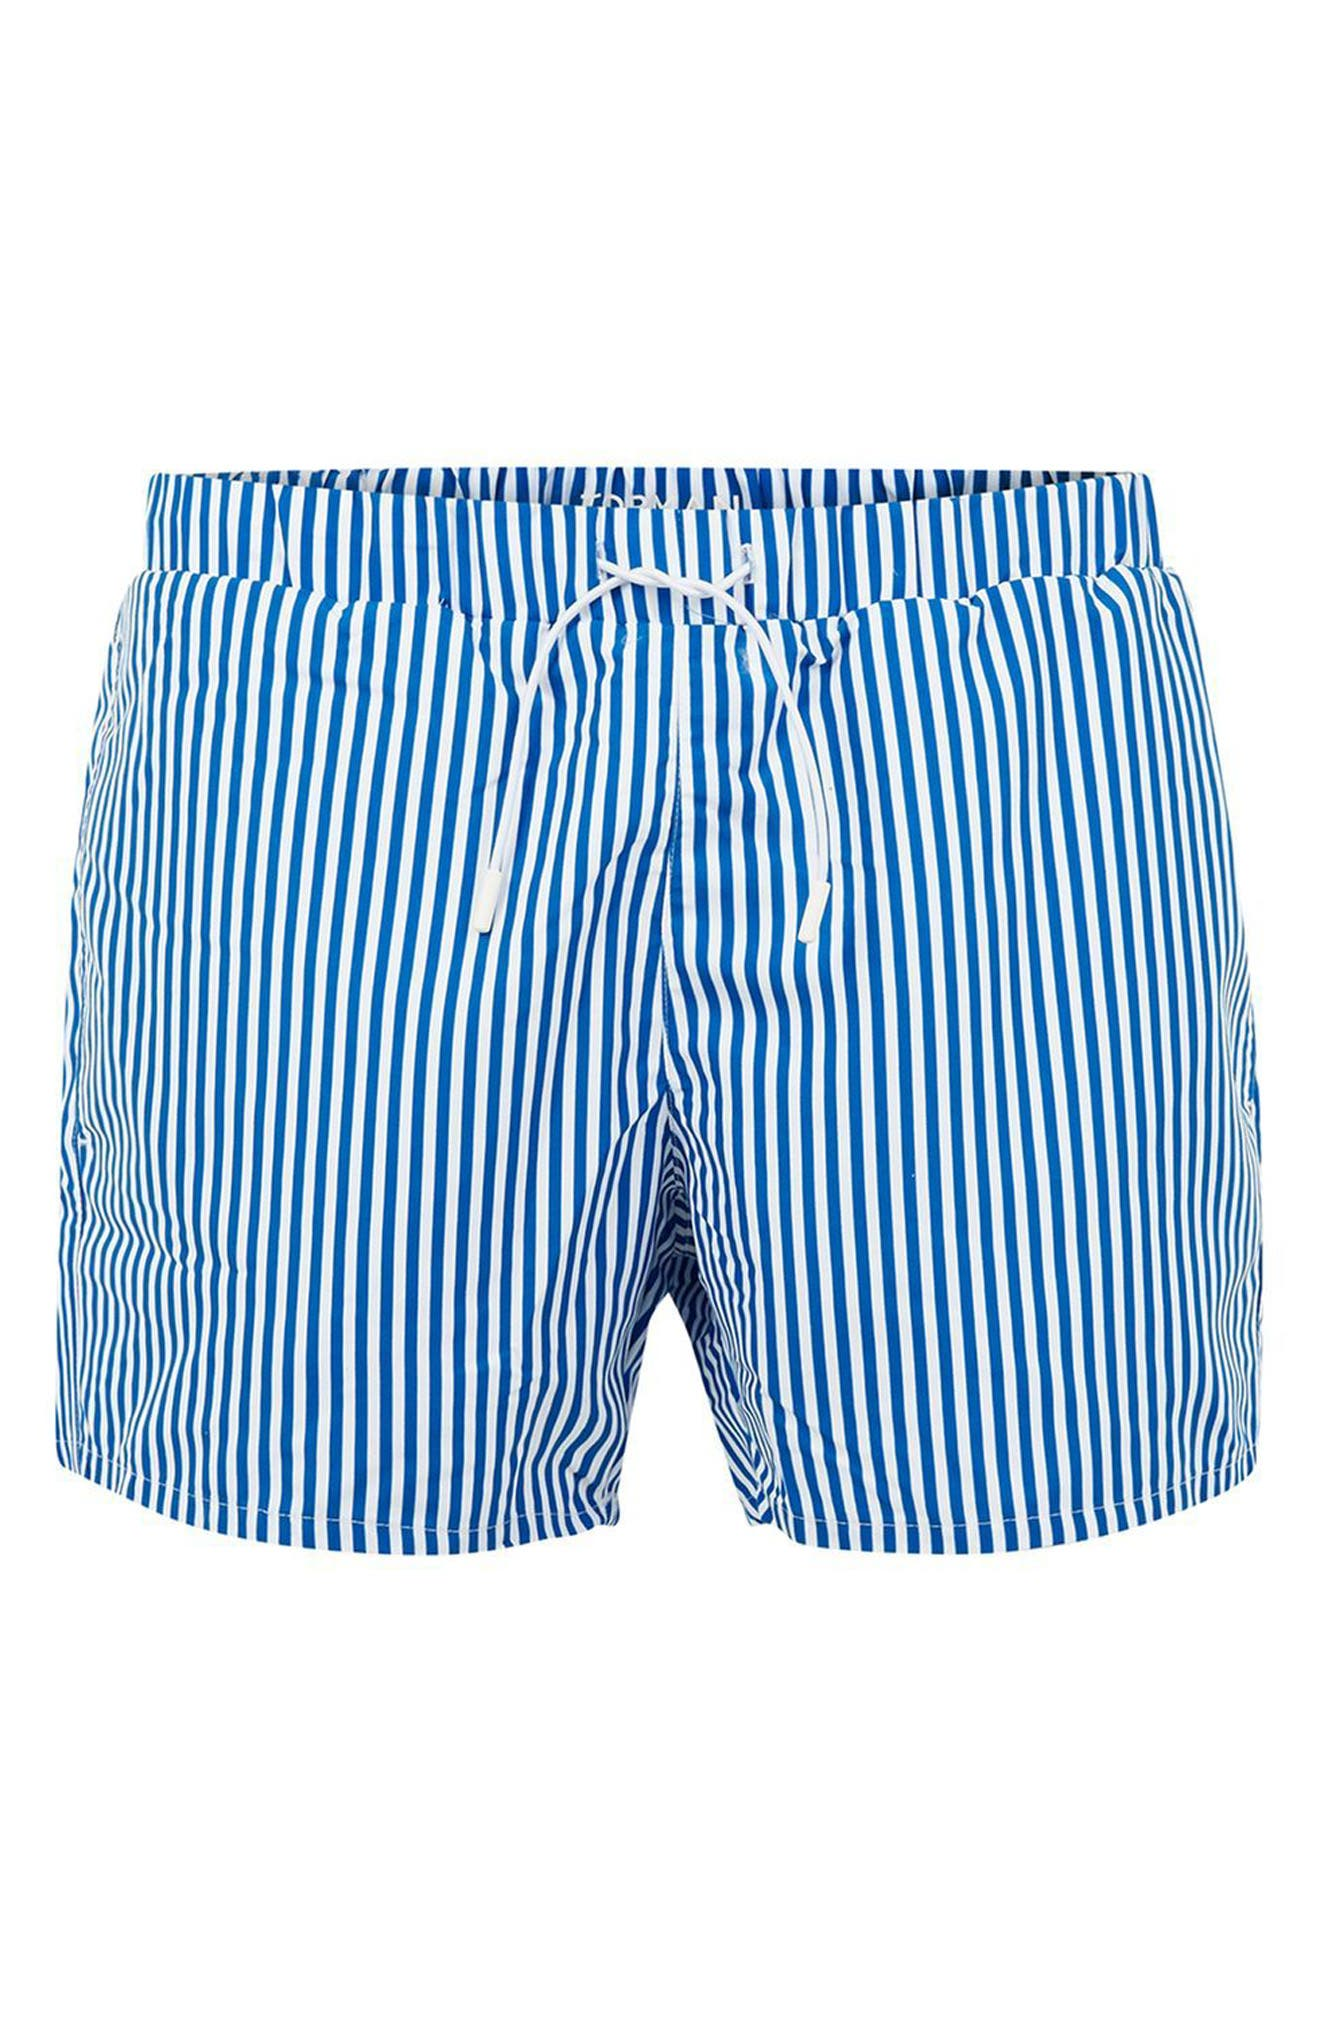 Stripe Swim Trunks,                             Alternate thumbnail 3, color,                             420